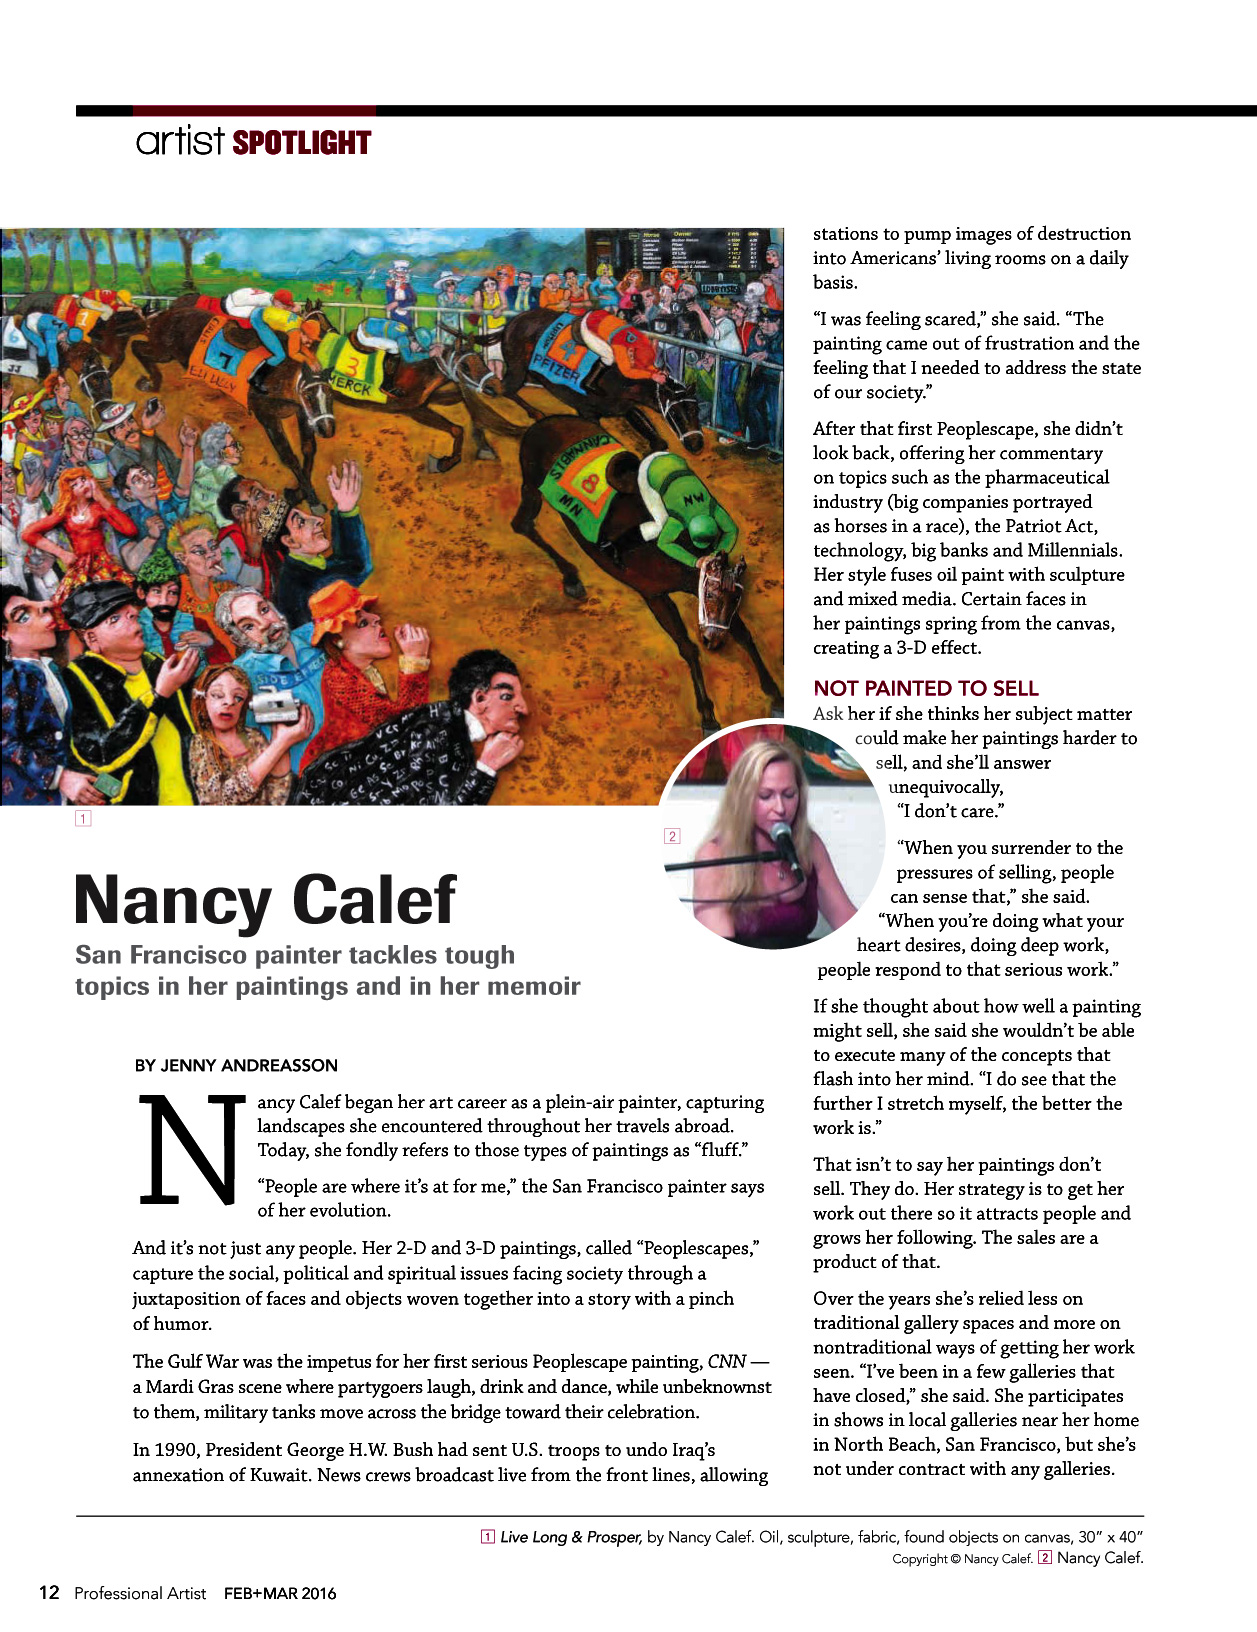 Nancy Calef Professional Artist Mag Feb/March 2016